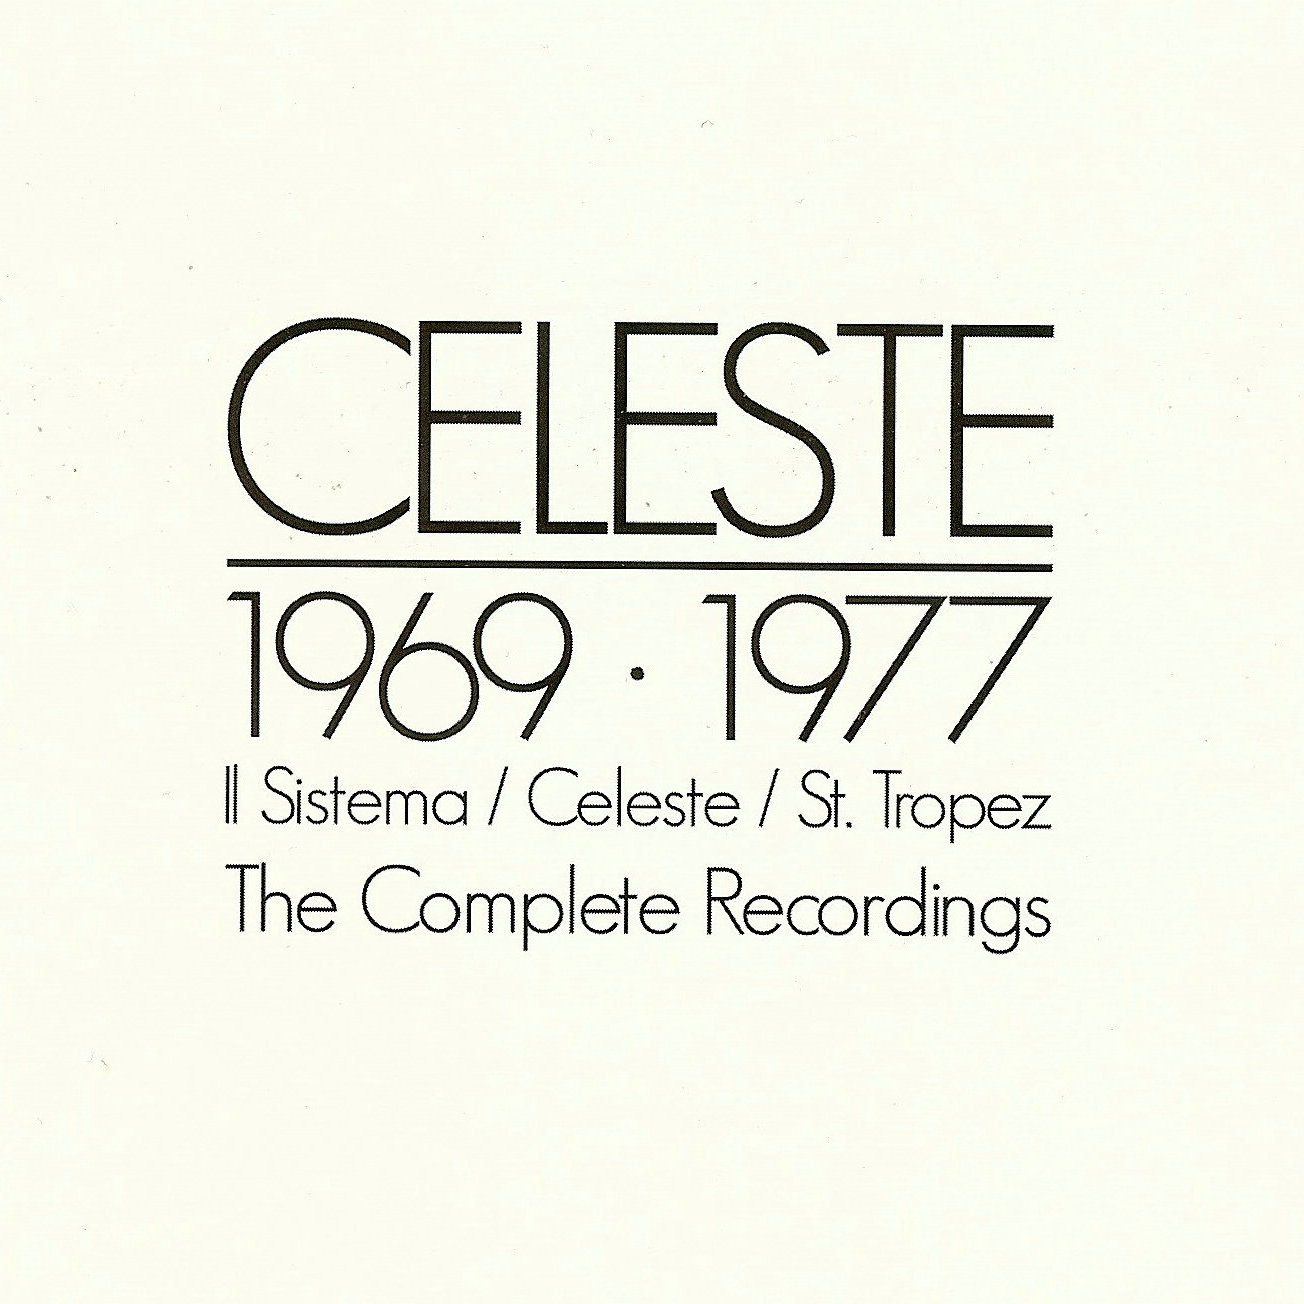 1969-1977: The Complete Recordings by CELESTE album cover